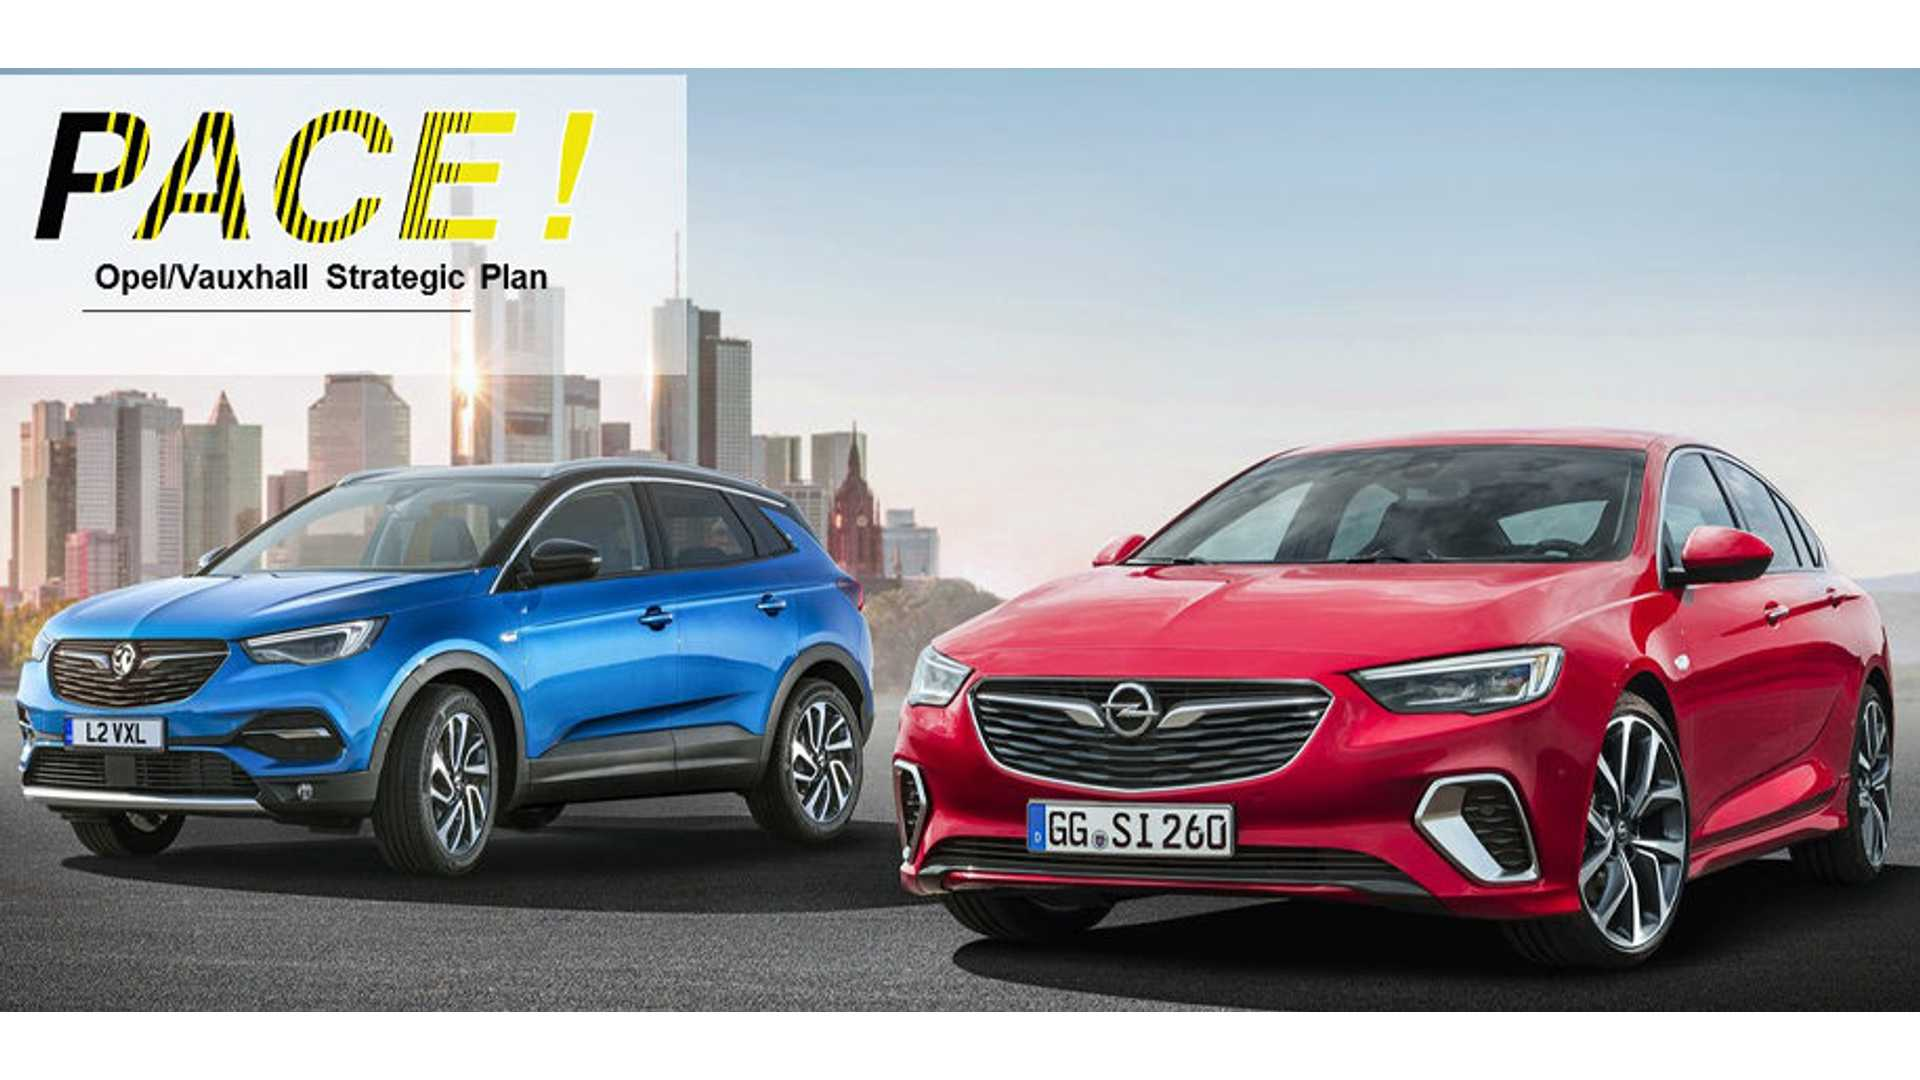 73 New Opel Will Launch Full Electric Corsa In 2020 Spesification